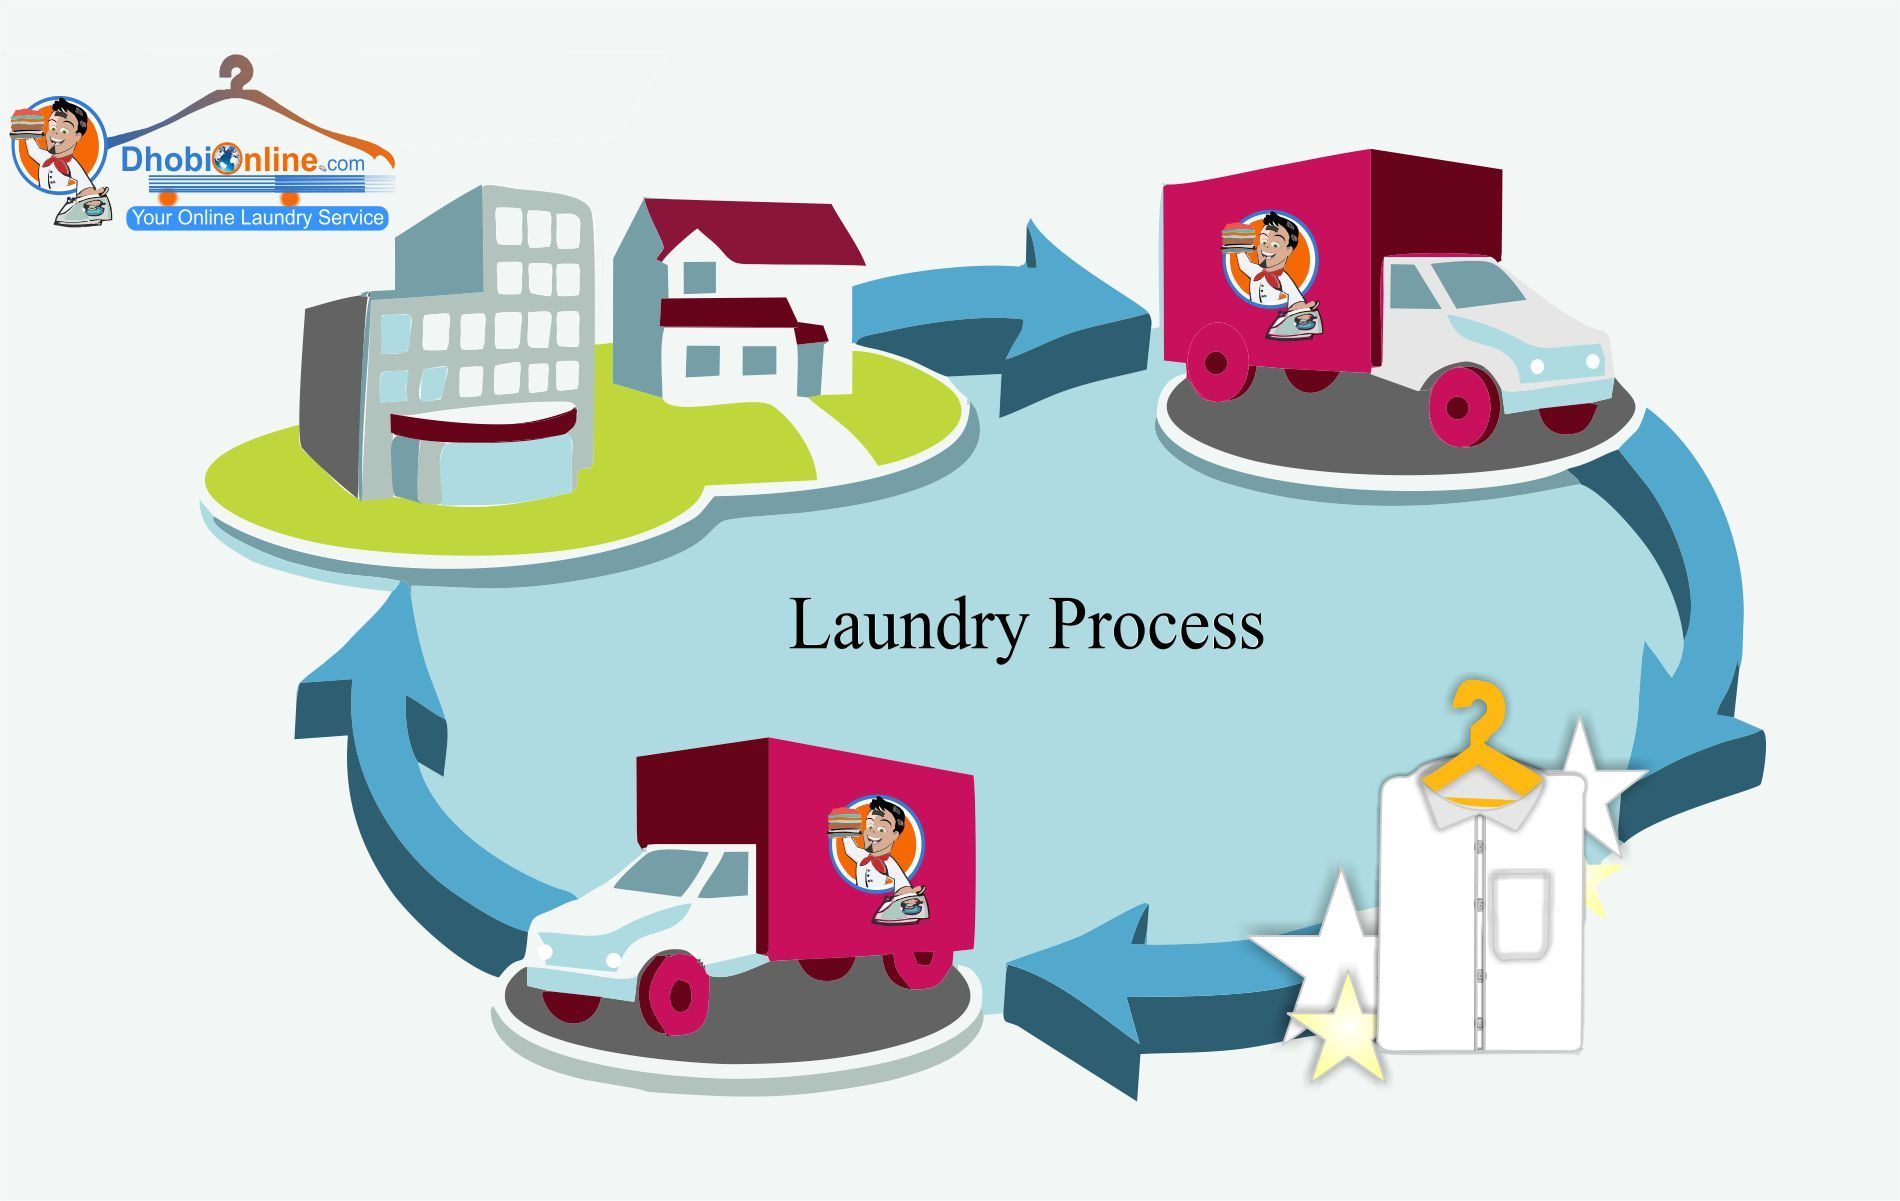 Online Laundry Service In Delhi Ncr Dhobi Online Washing Drying